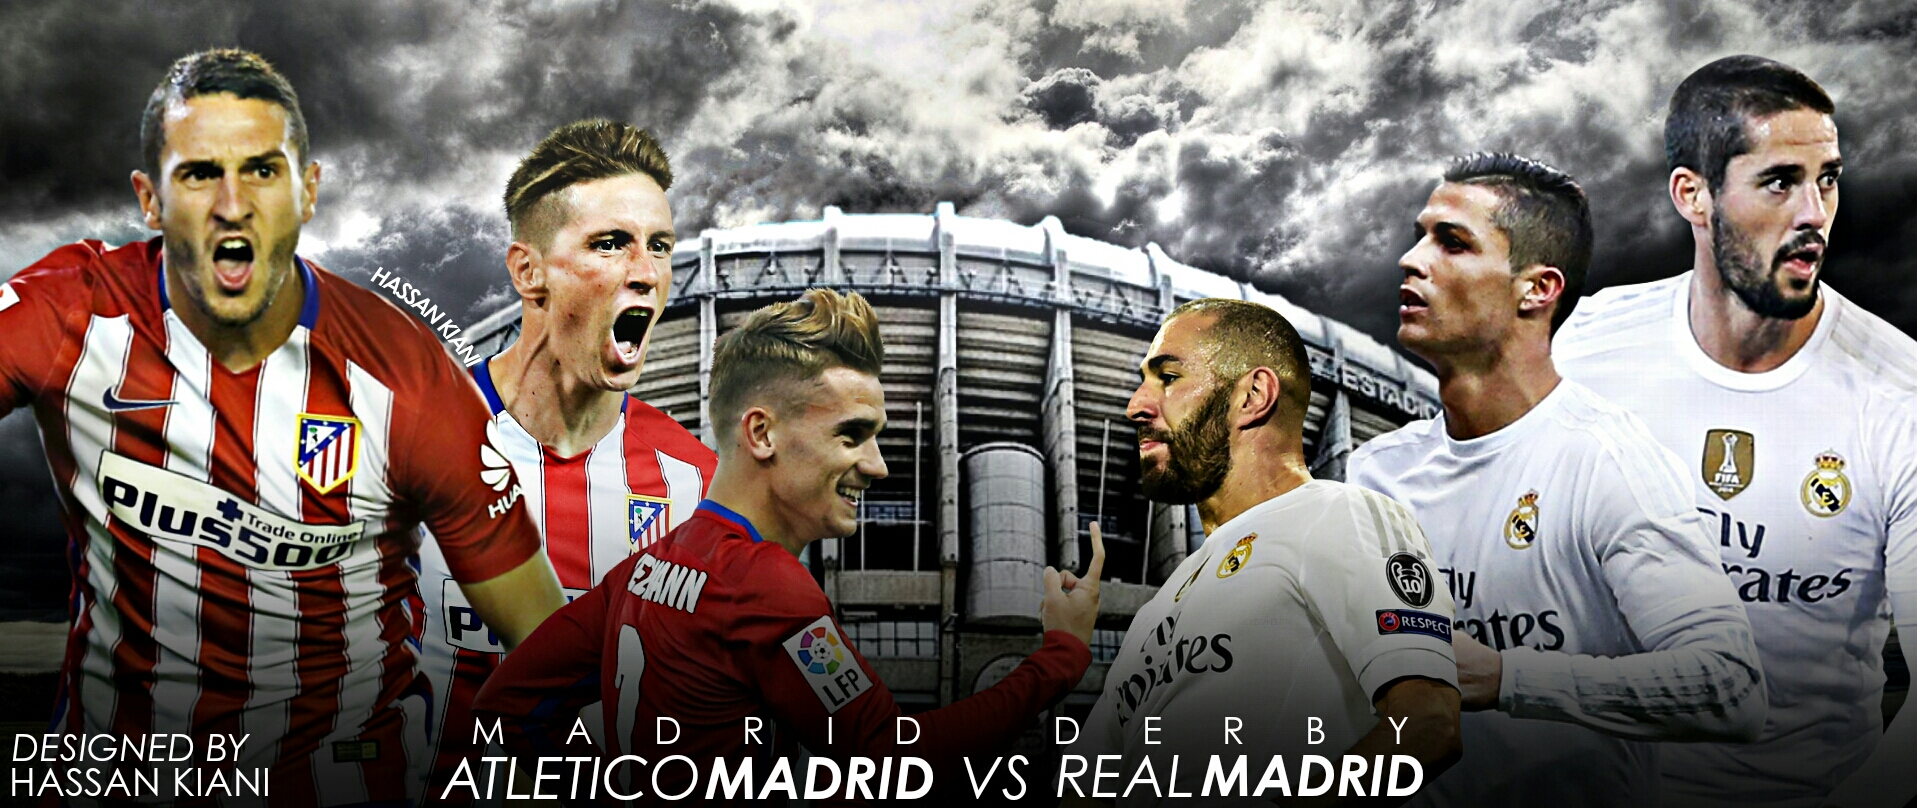 Atletico Madrid Vs Real Madrid By Hassangraphics7 On Deviantart